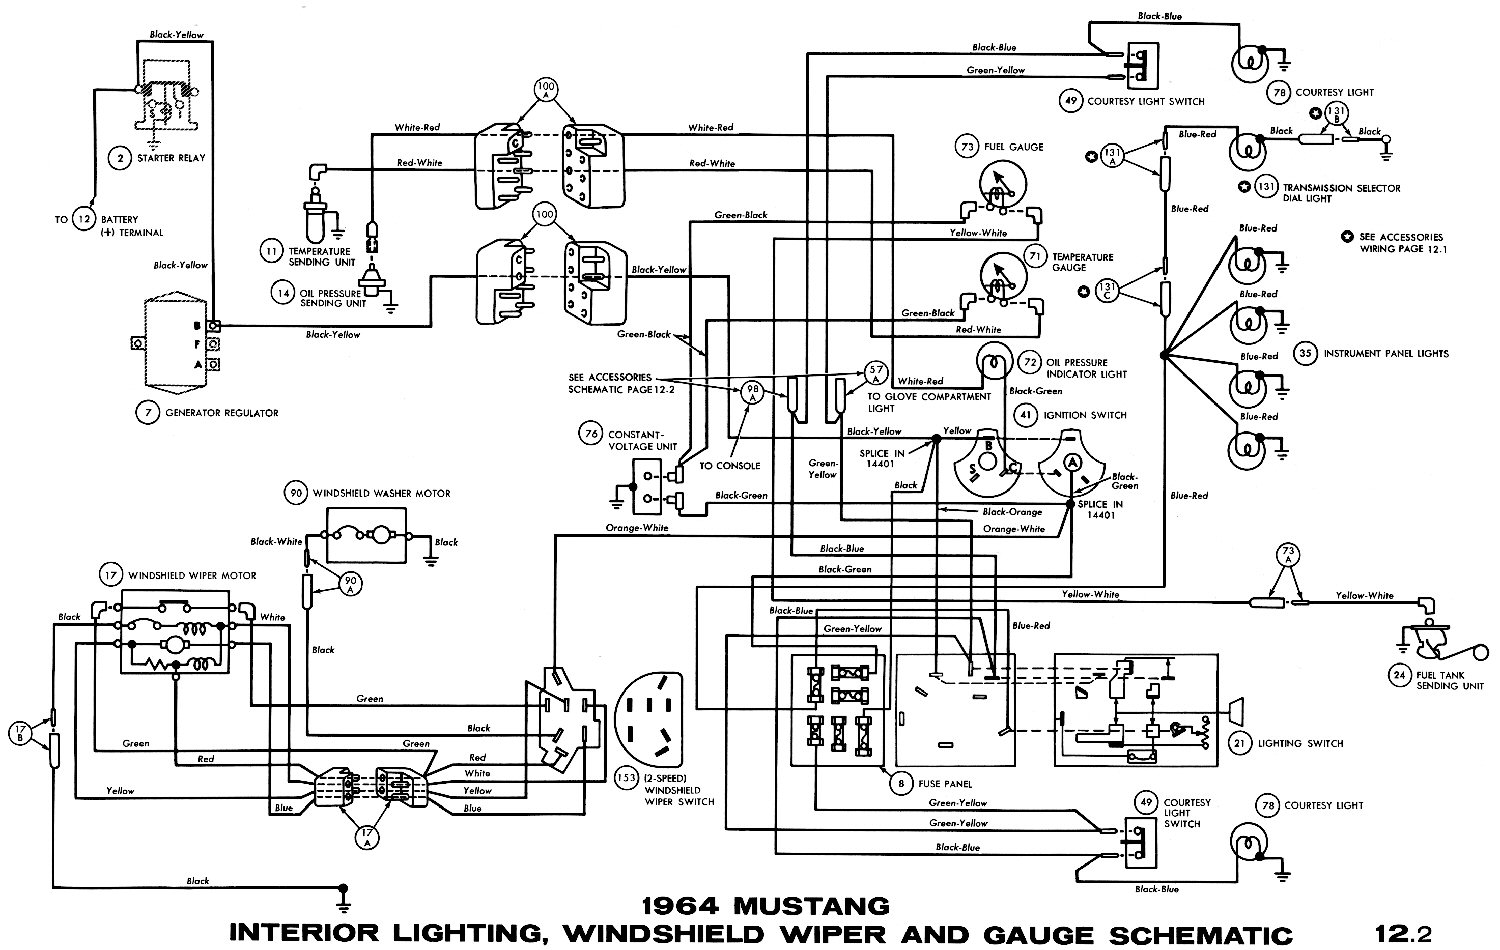 1964k 66 mustang wiring diagram online 65 ford mustang wiring diagram 1965 ford mustang wiring diagrams at crackthecode.co